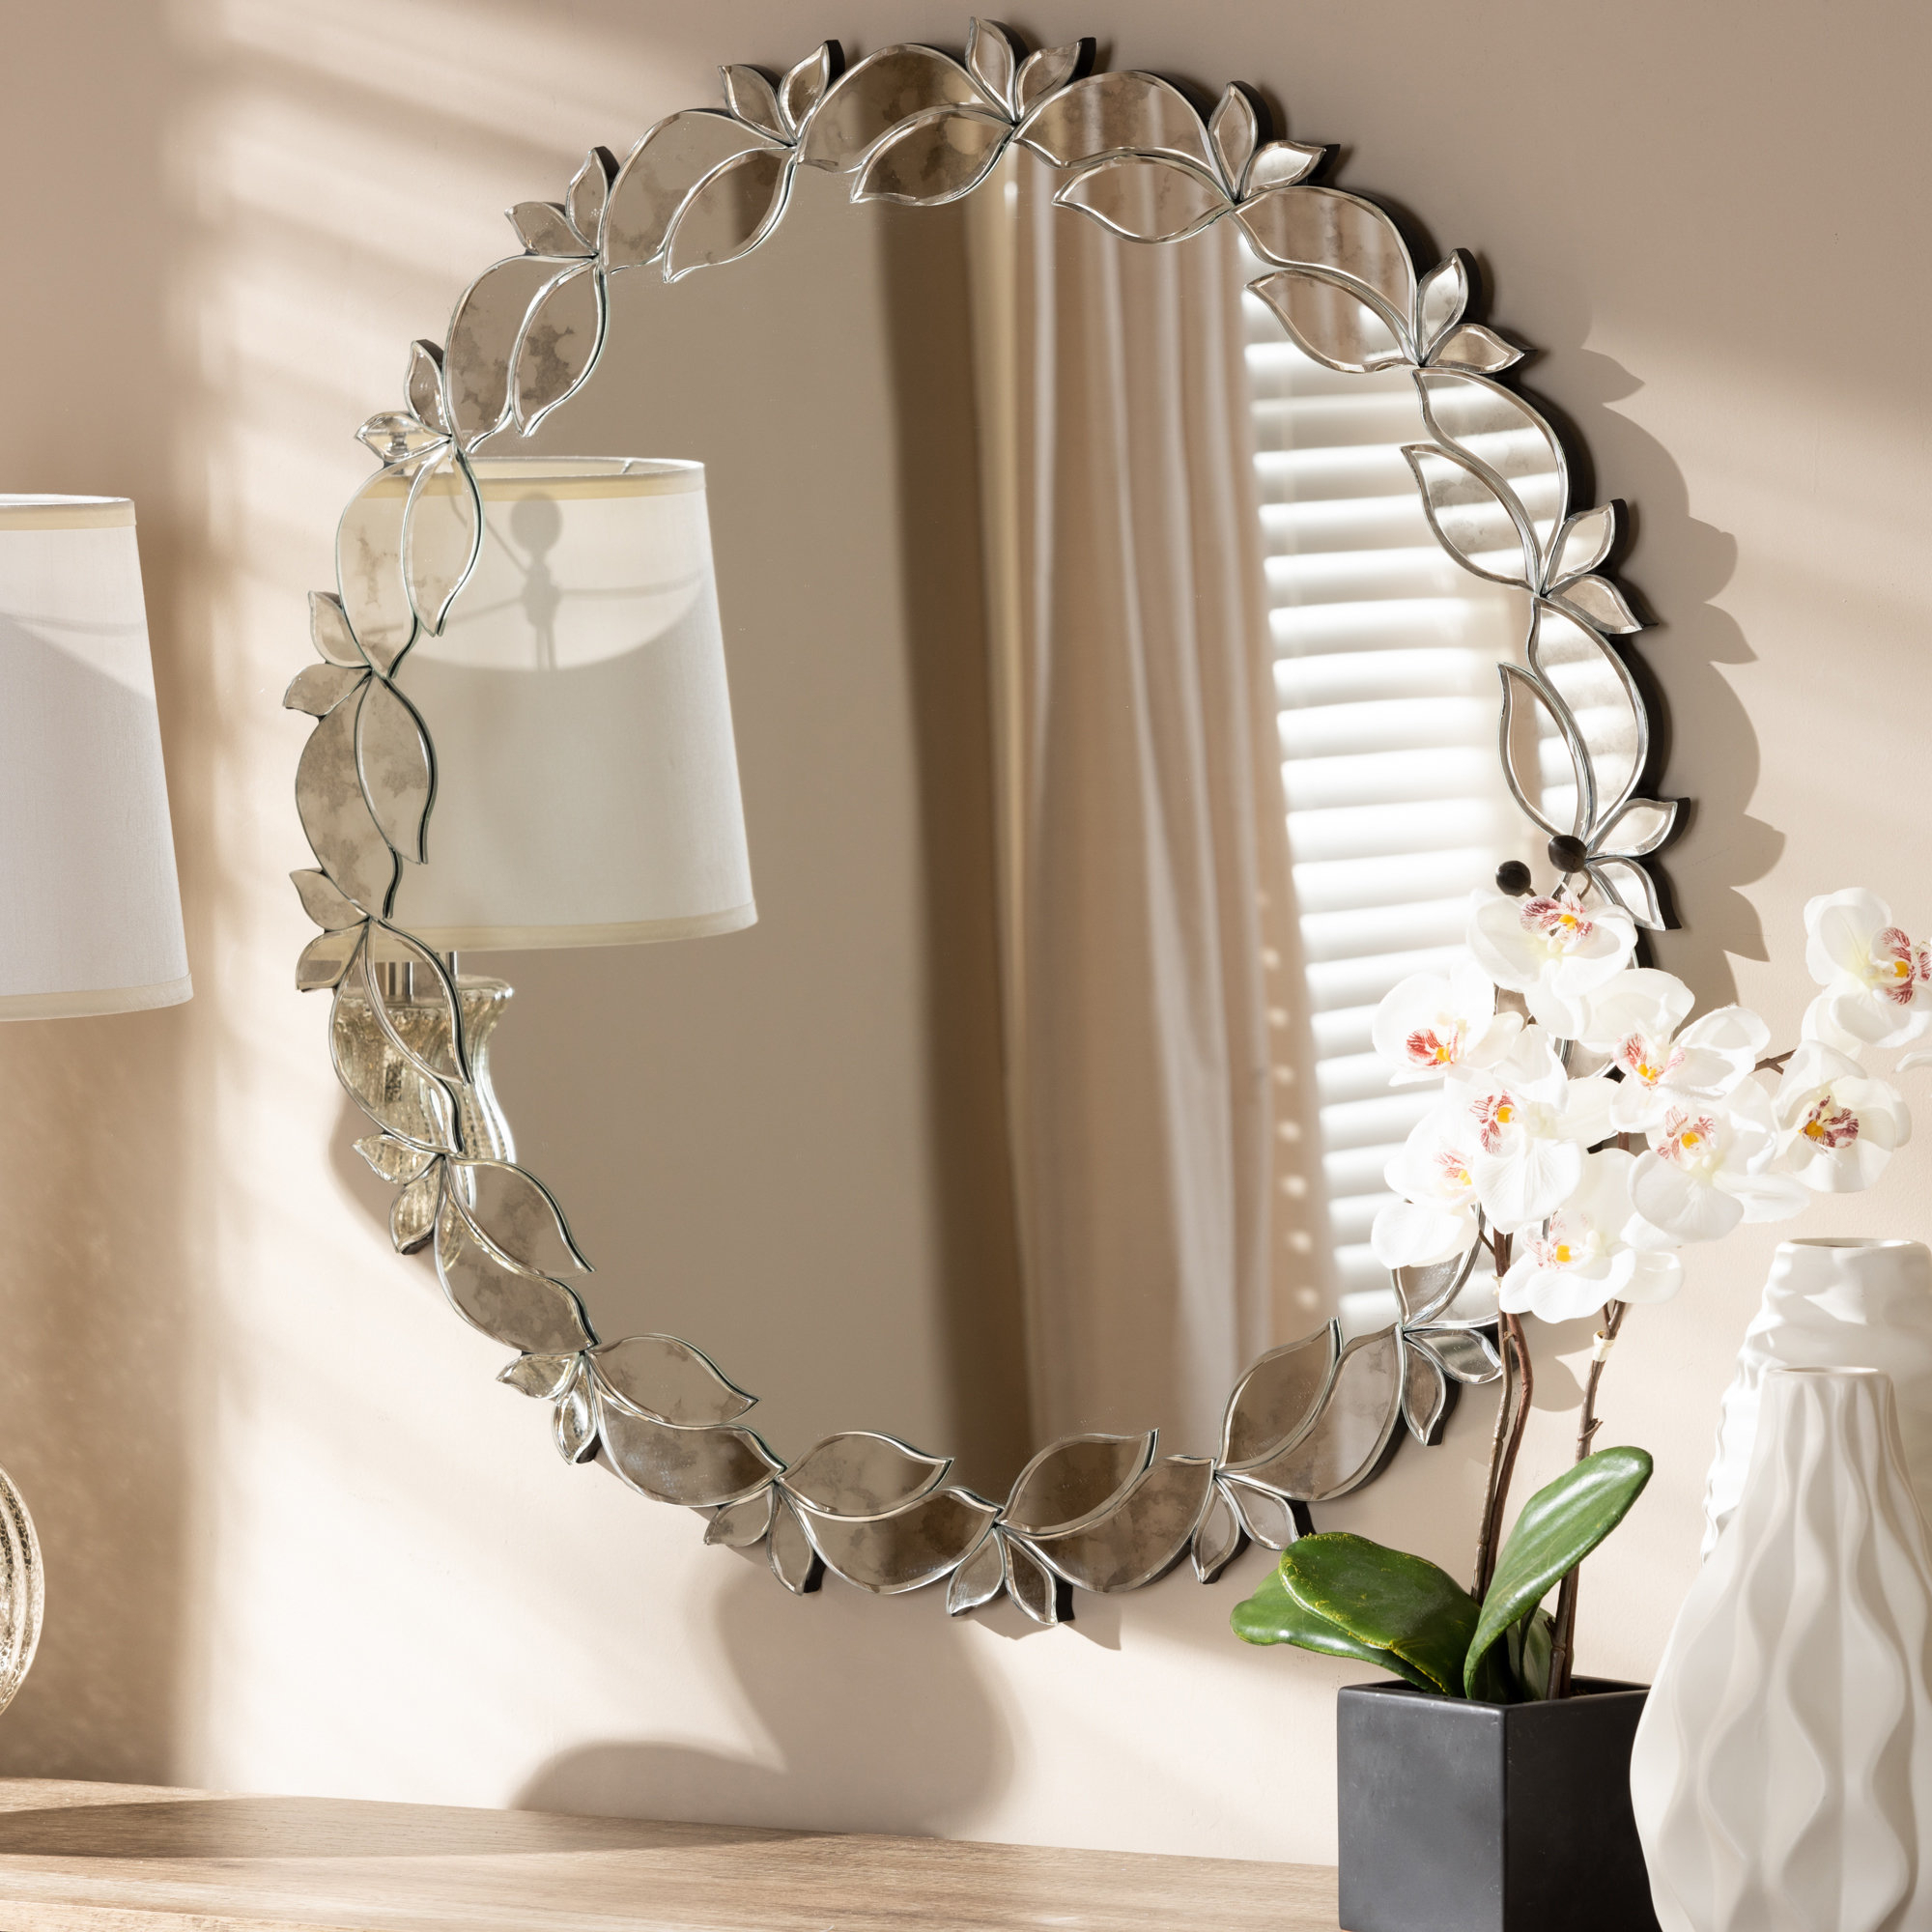 Lidya Frameless Beveled Wall Mirrors With Regard To Fashionable Isom Modern & Contemporary Wall Mirror (View 11 of 20)